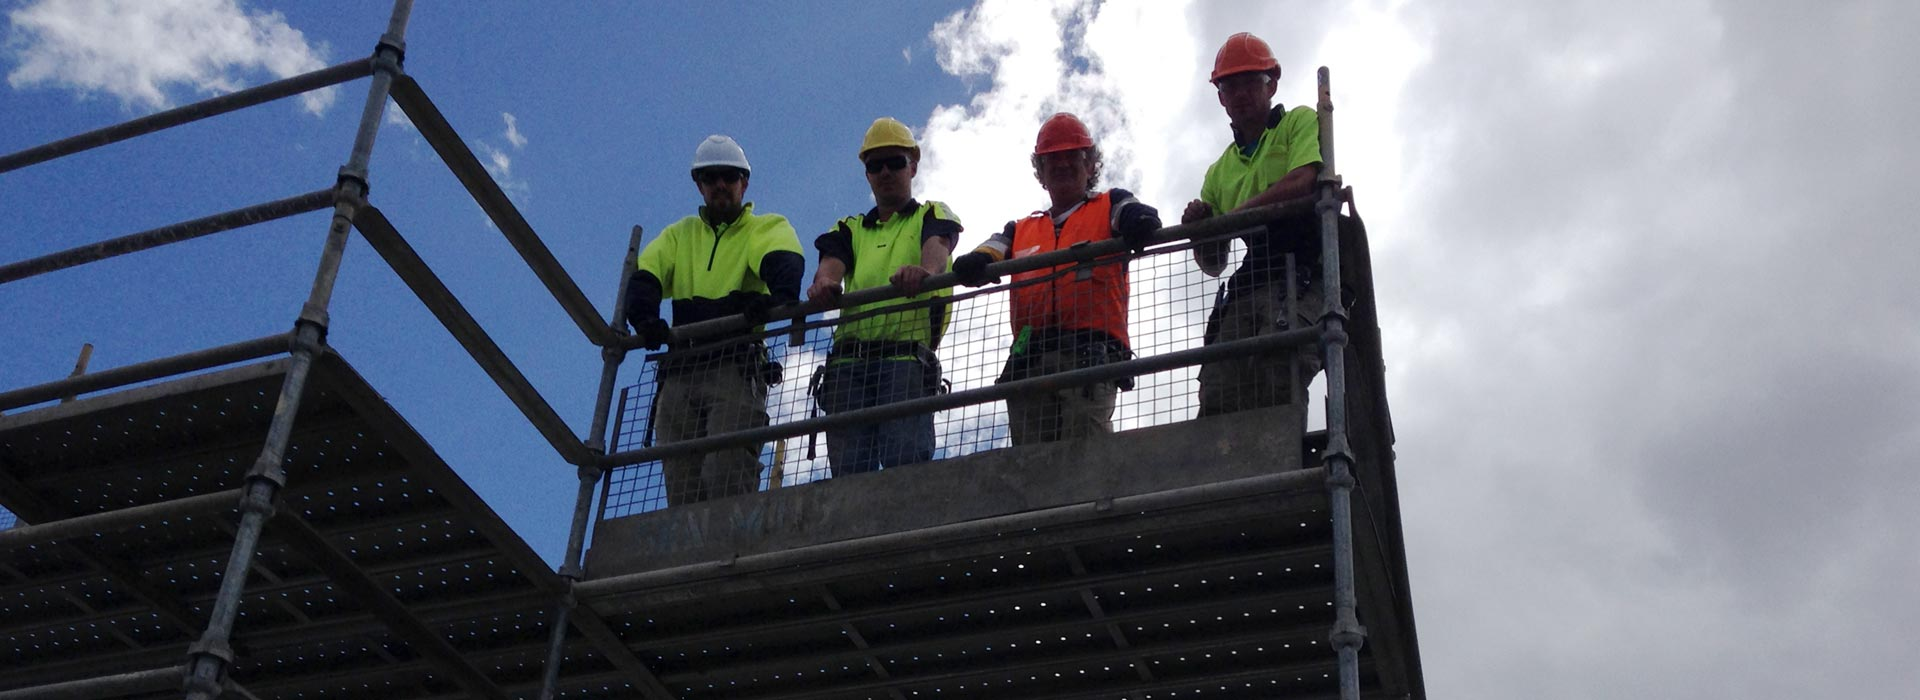 industrial licencing solutions scaffolding workers standing